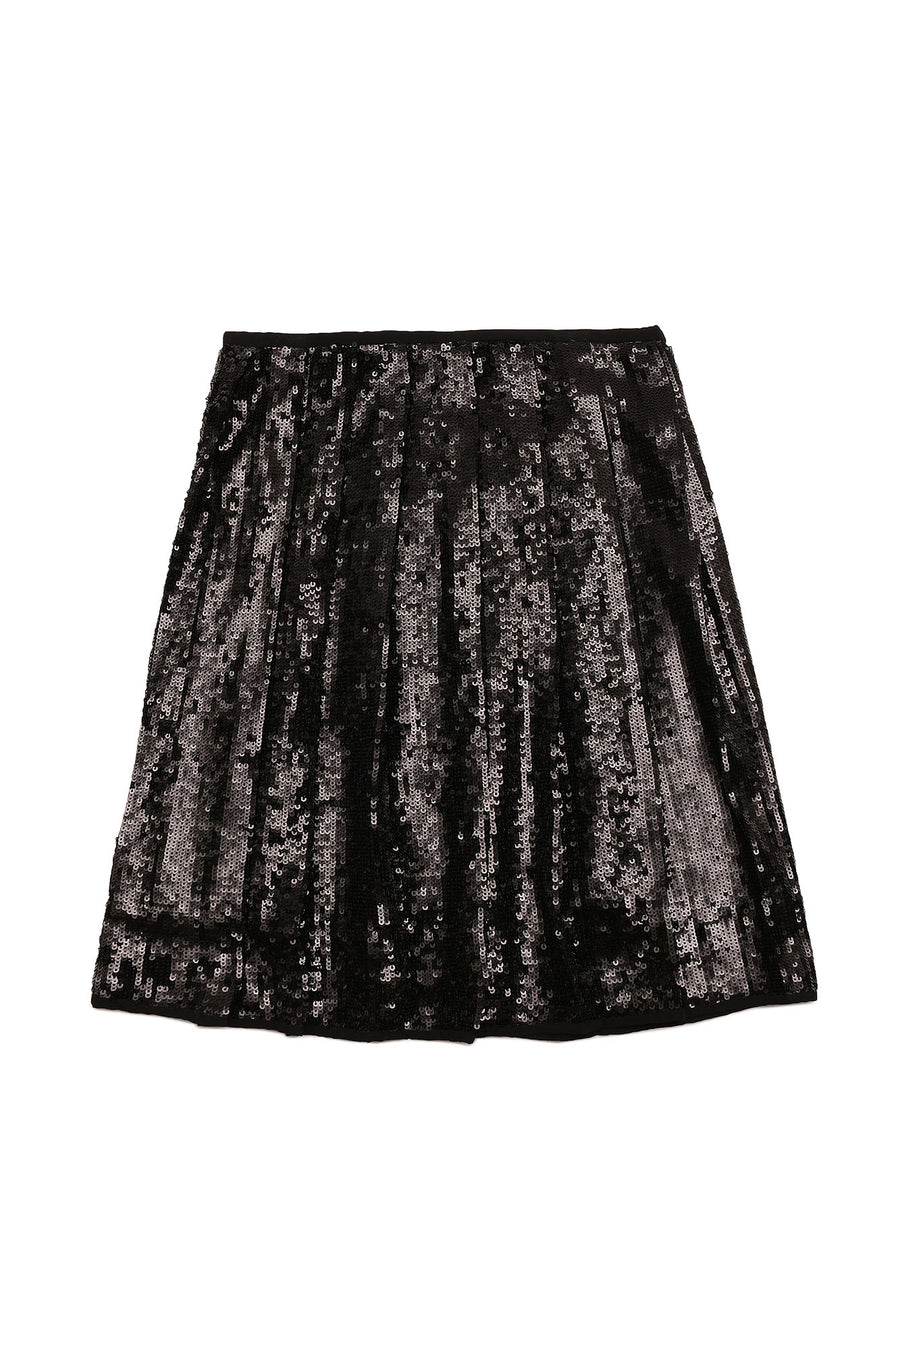 Sequin Pleat Skirt by N21